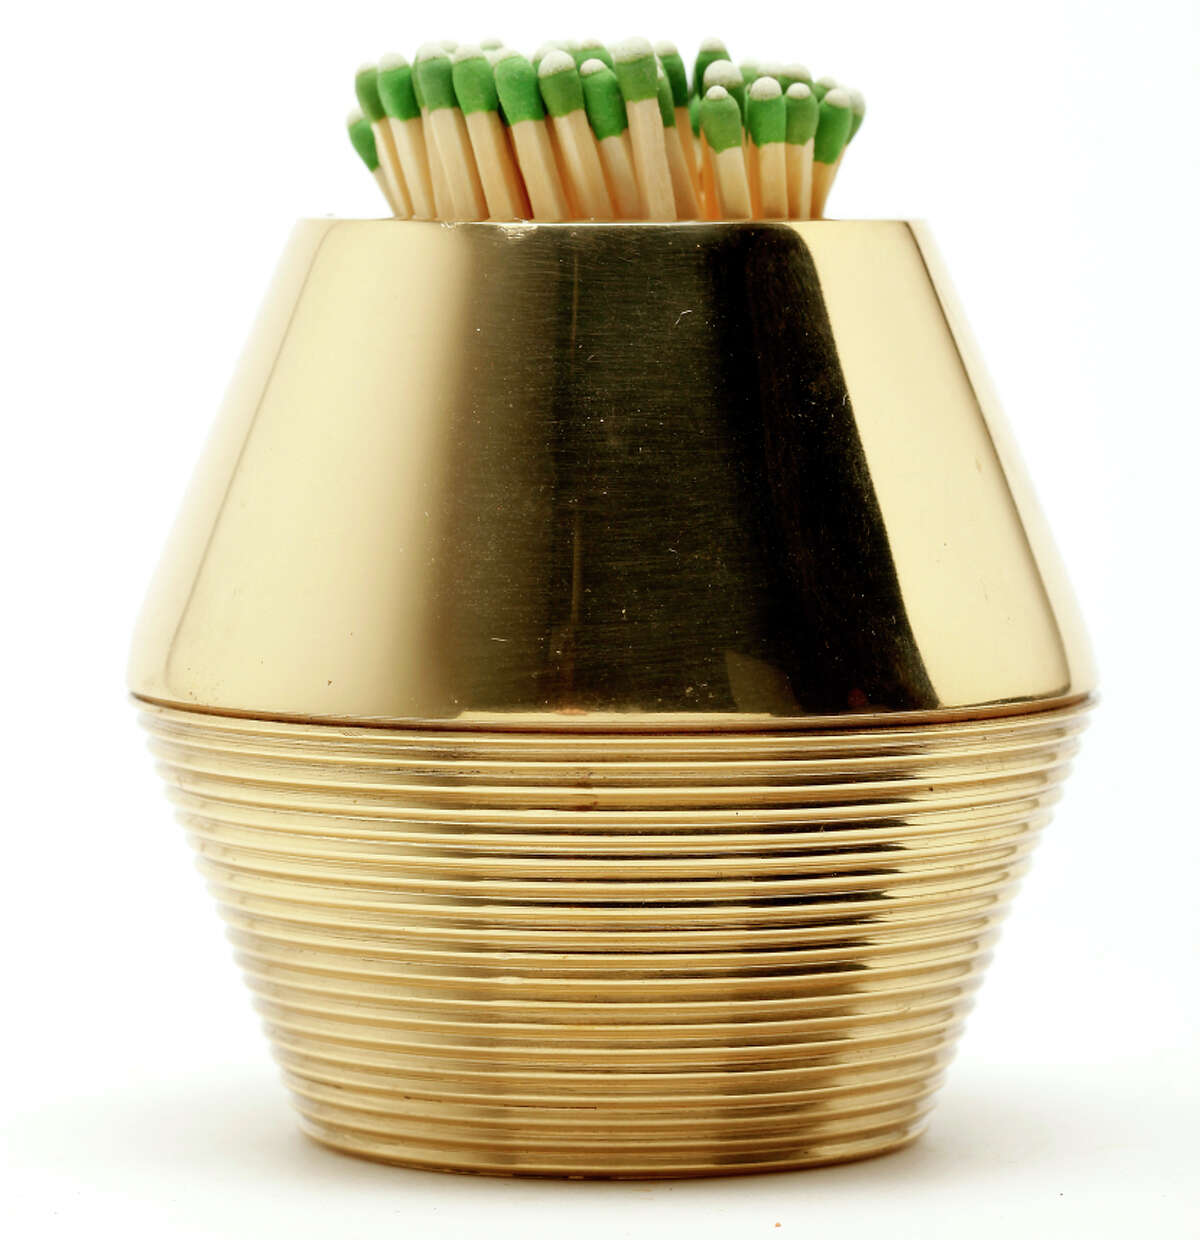 AERIN tapered cone match strike in brass works with strike-anywhere matches. $190, www.aerin.com